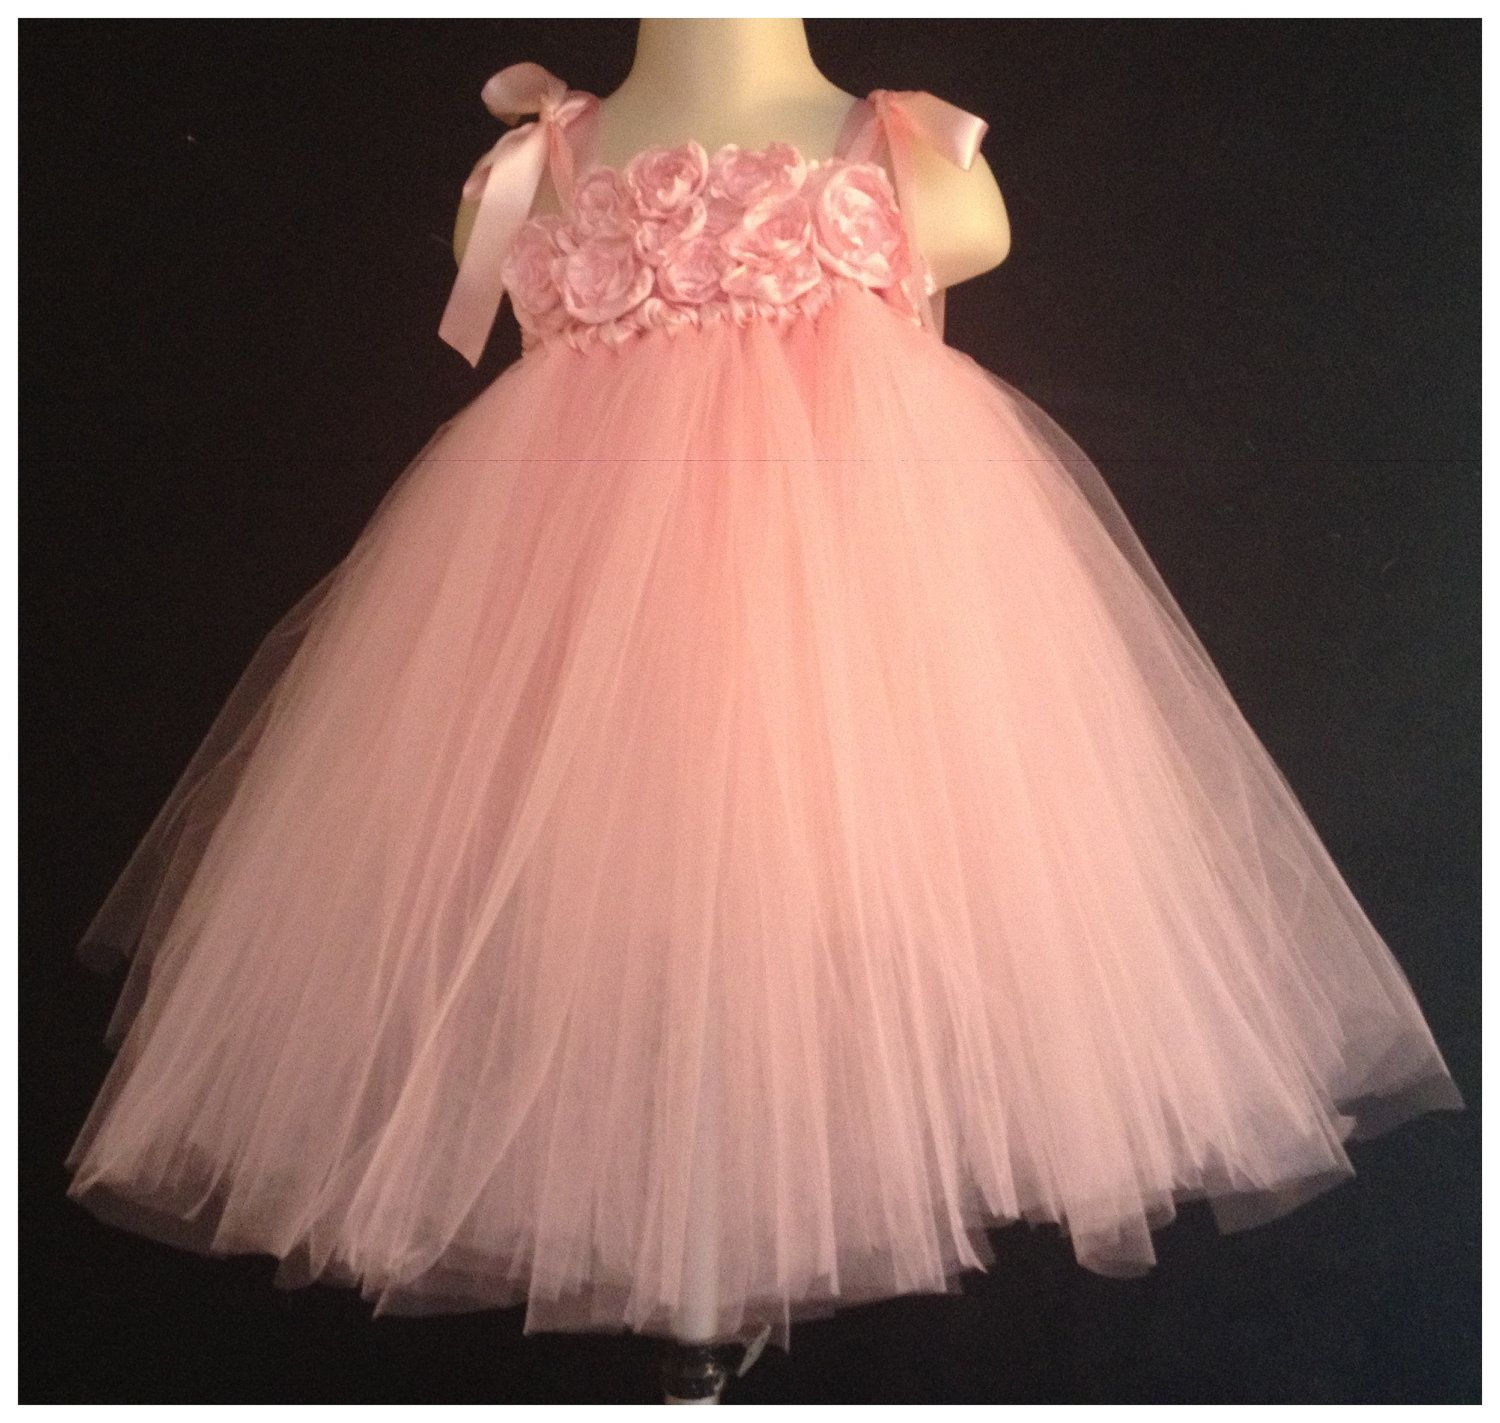 Pink tutu dress for the birthday photo session